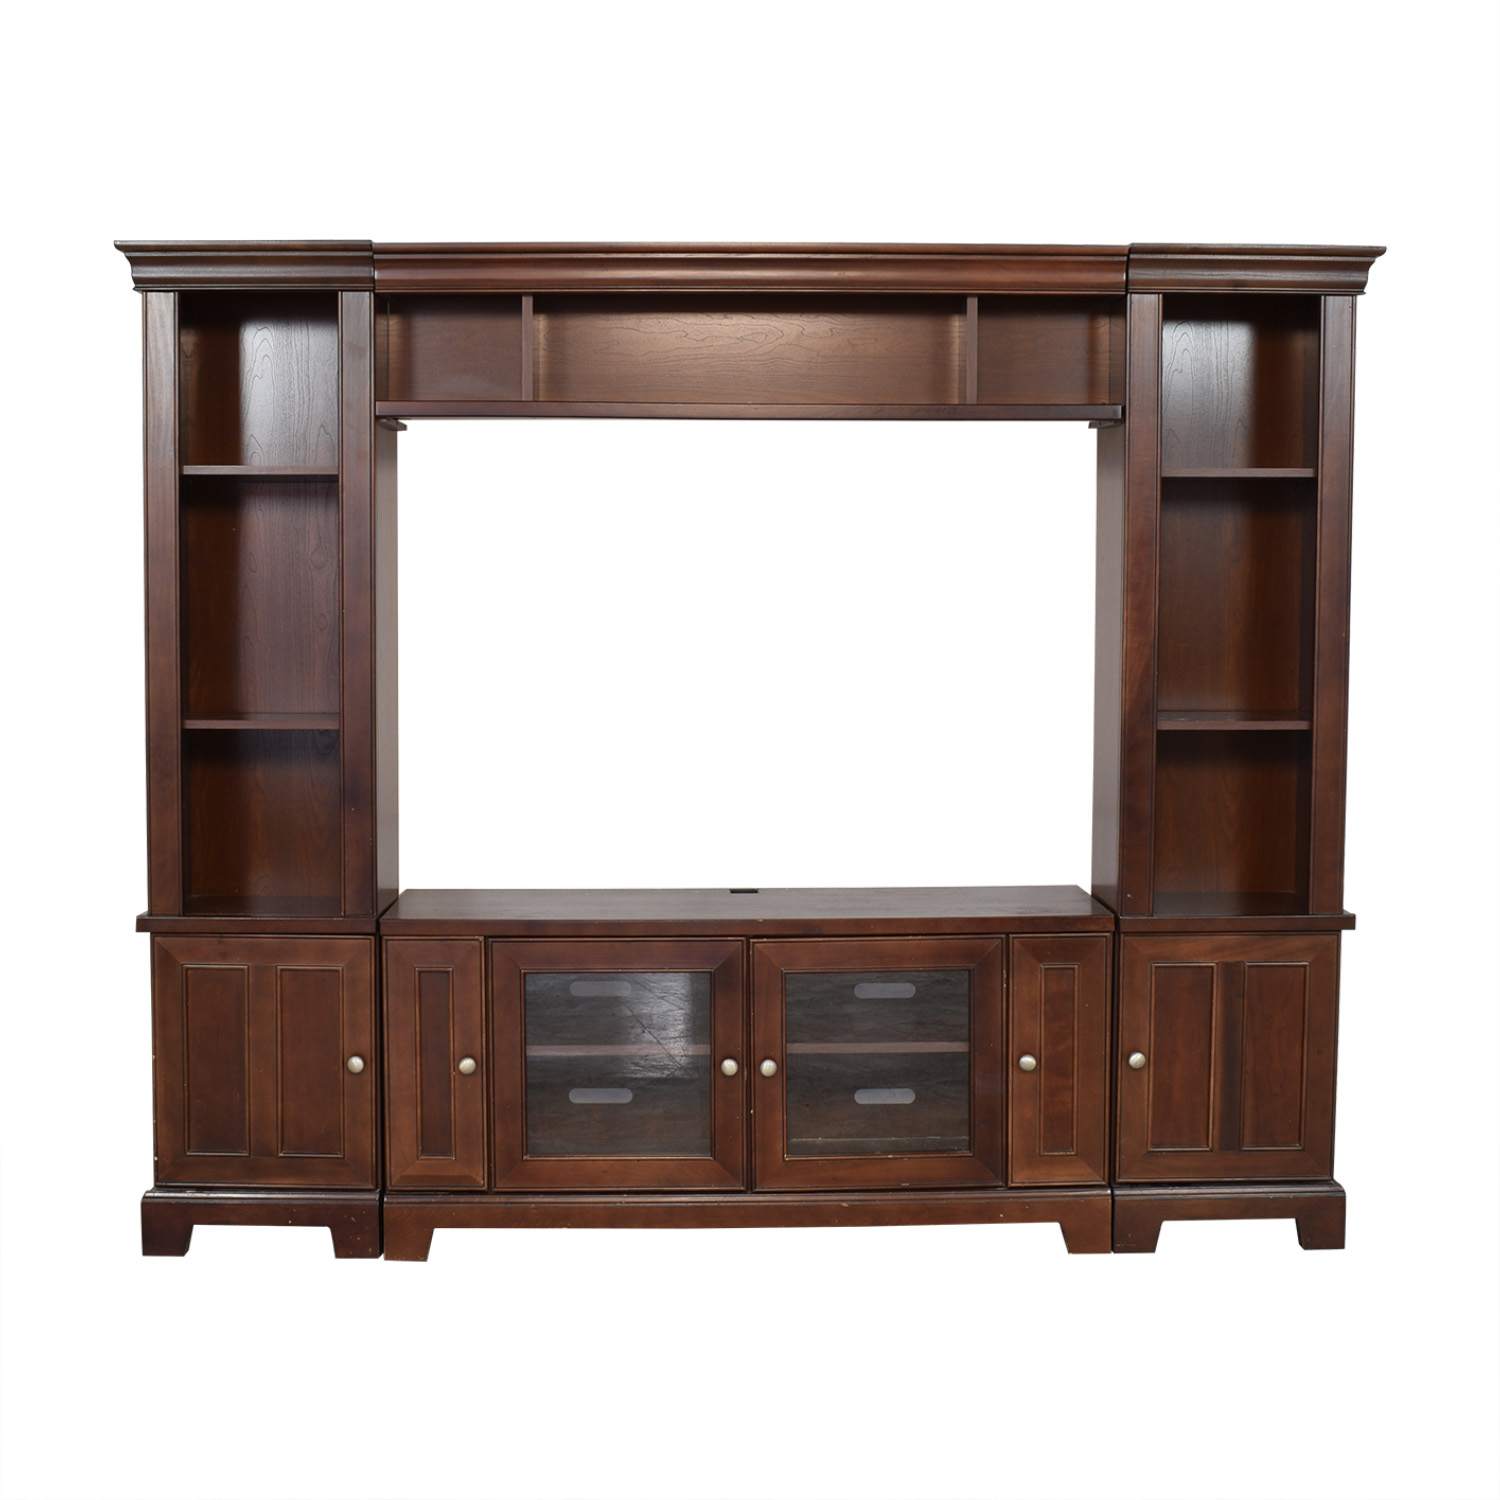 Entertainment Center with Cabinets